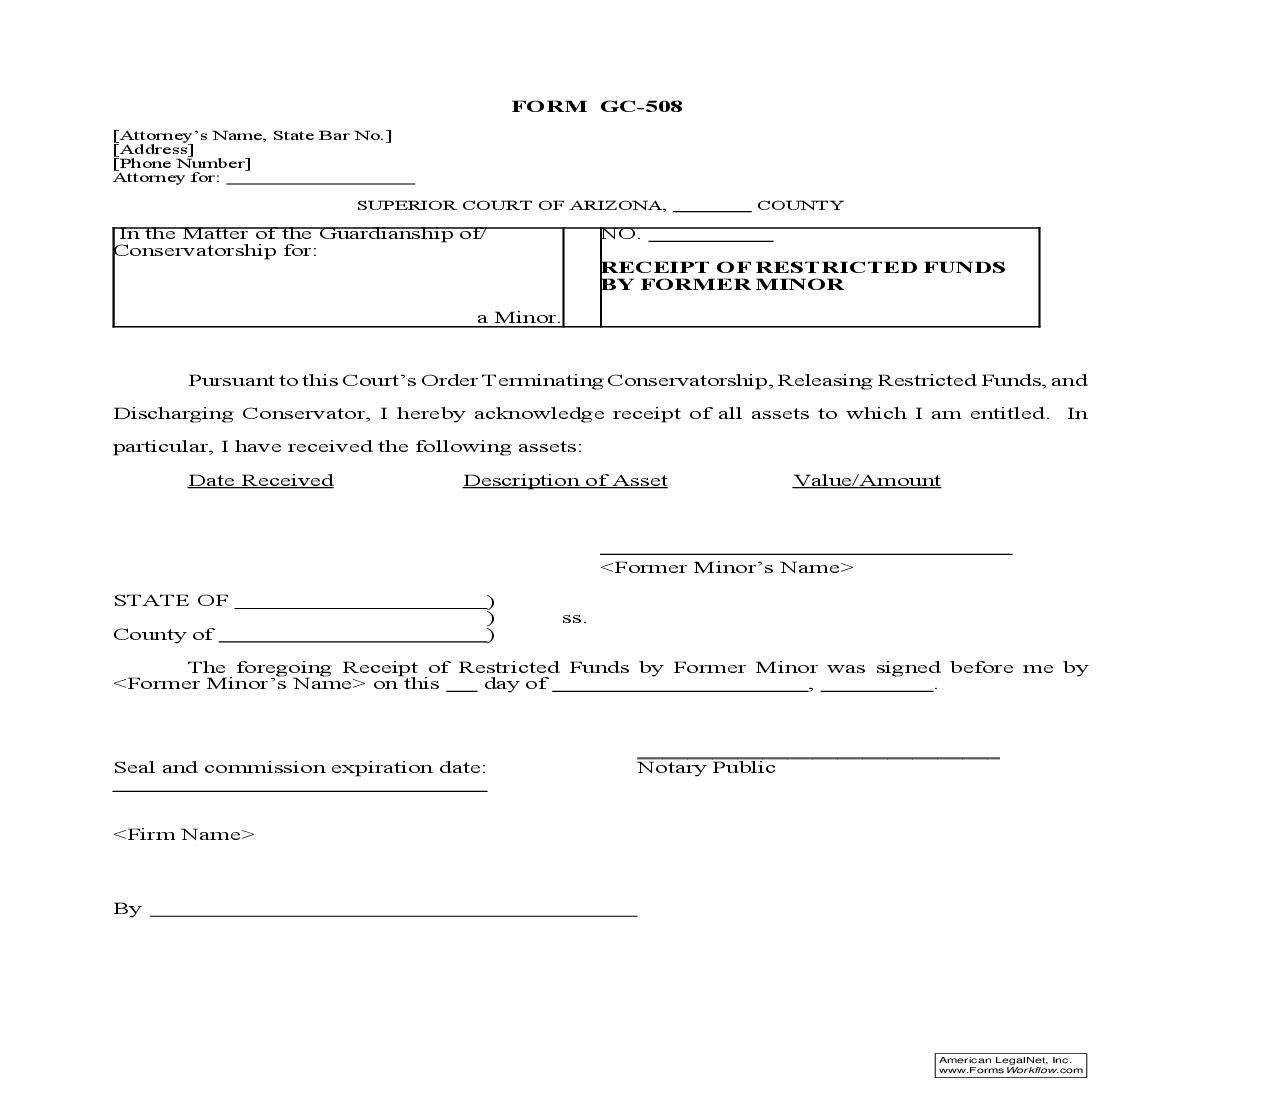 Receipt Of Restricted Funds By Former Minor {GC-508} | Pdf Doc Docx | GTLaw